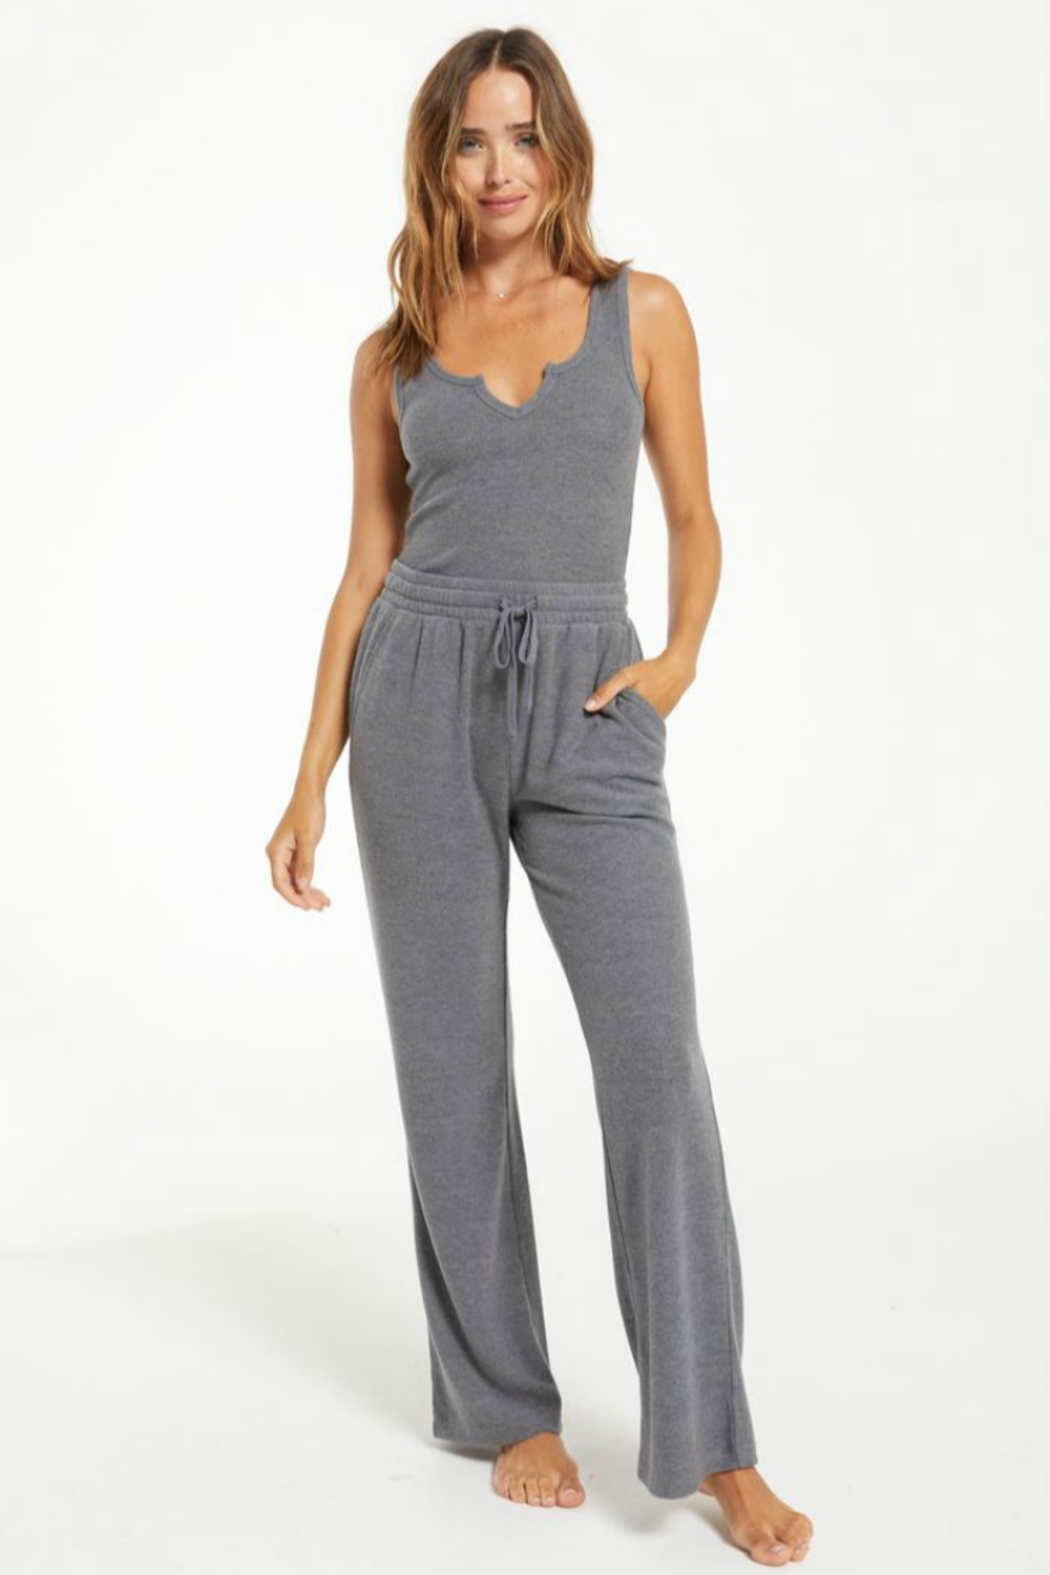 z supply Go With The Flow Pant - Back Cropped Image